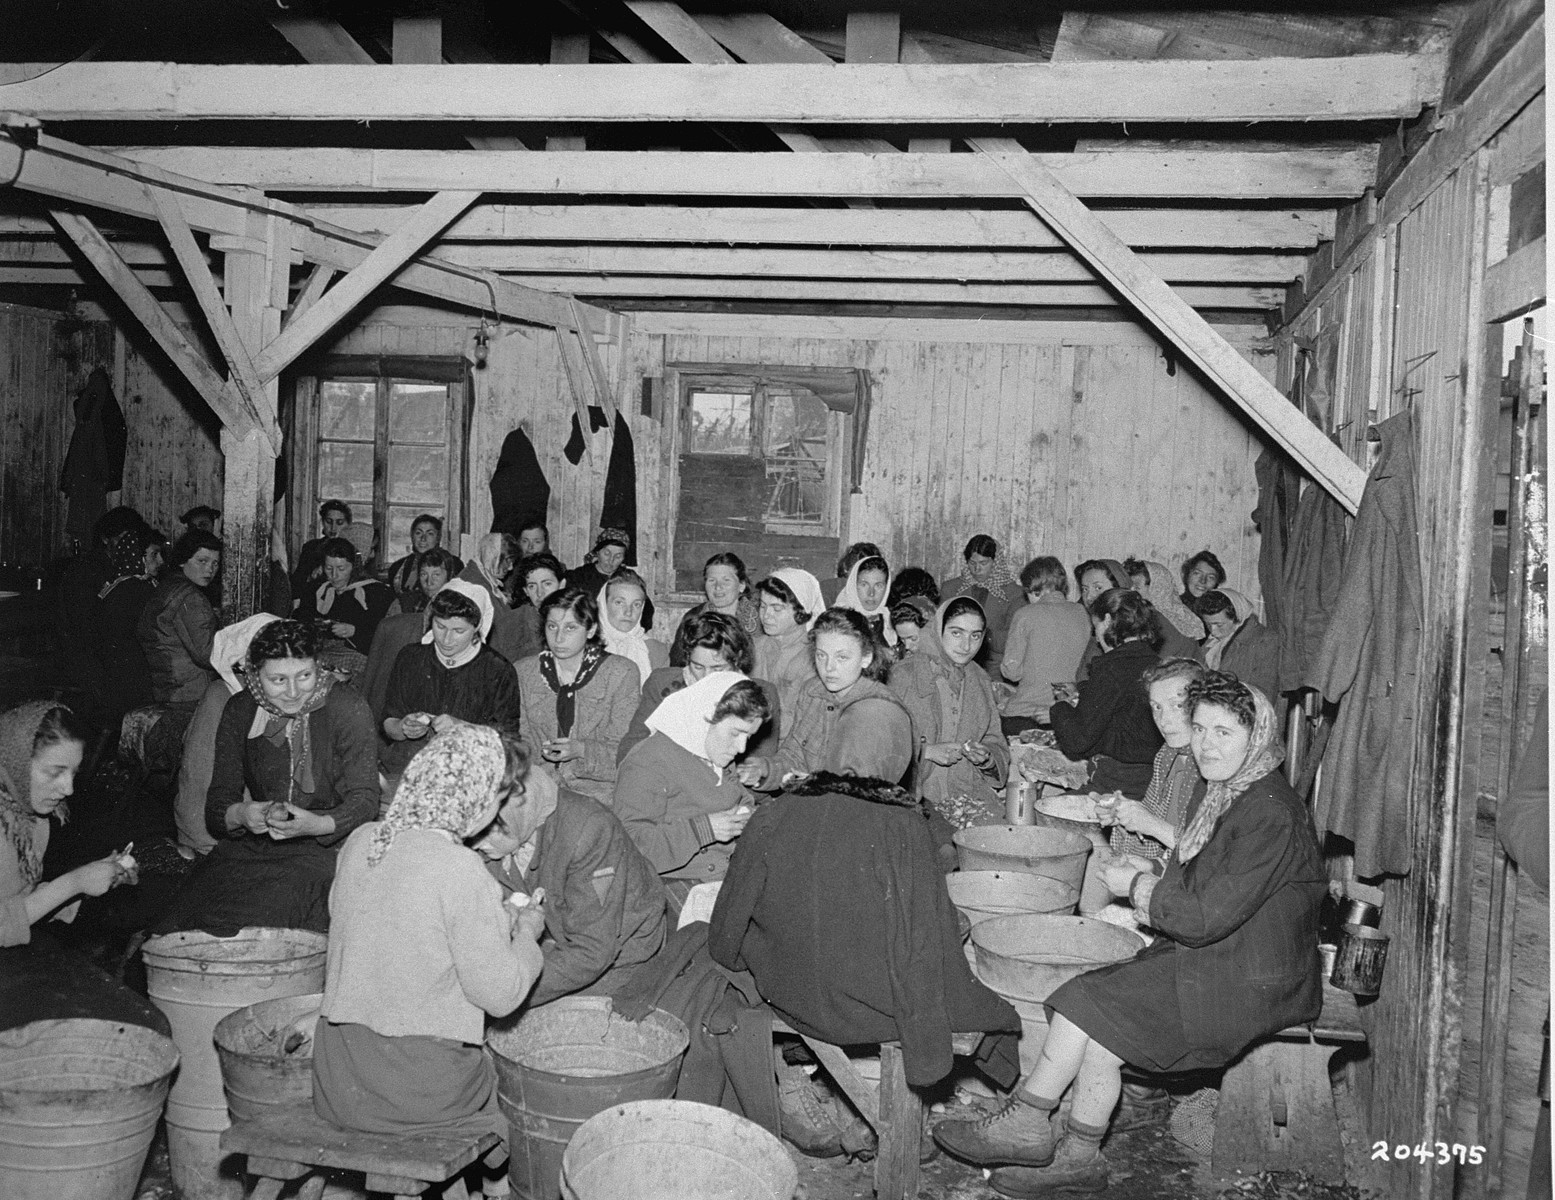 Female survivors peel potatoes in a  barracks in the Bergen-Belsen concentration camp.